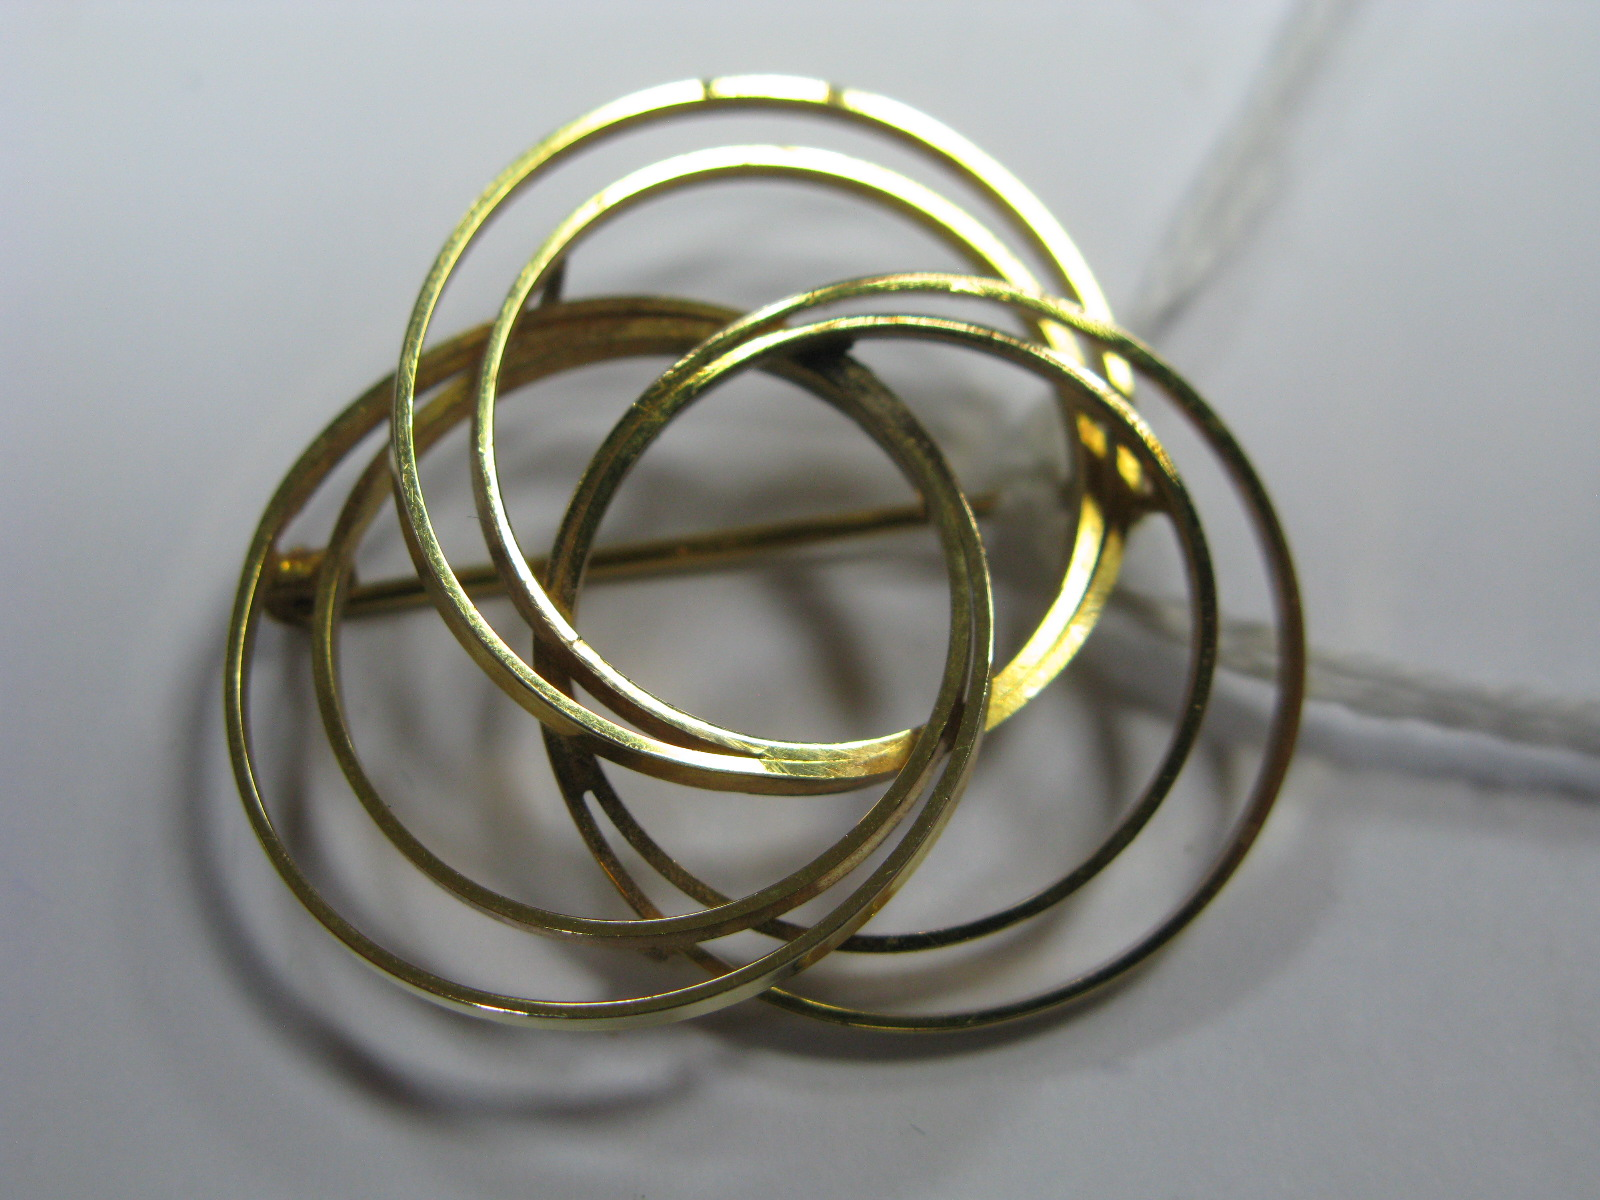 Lot 1364 - A 9ct Gold Modern Circular Design Brooch.